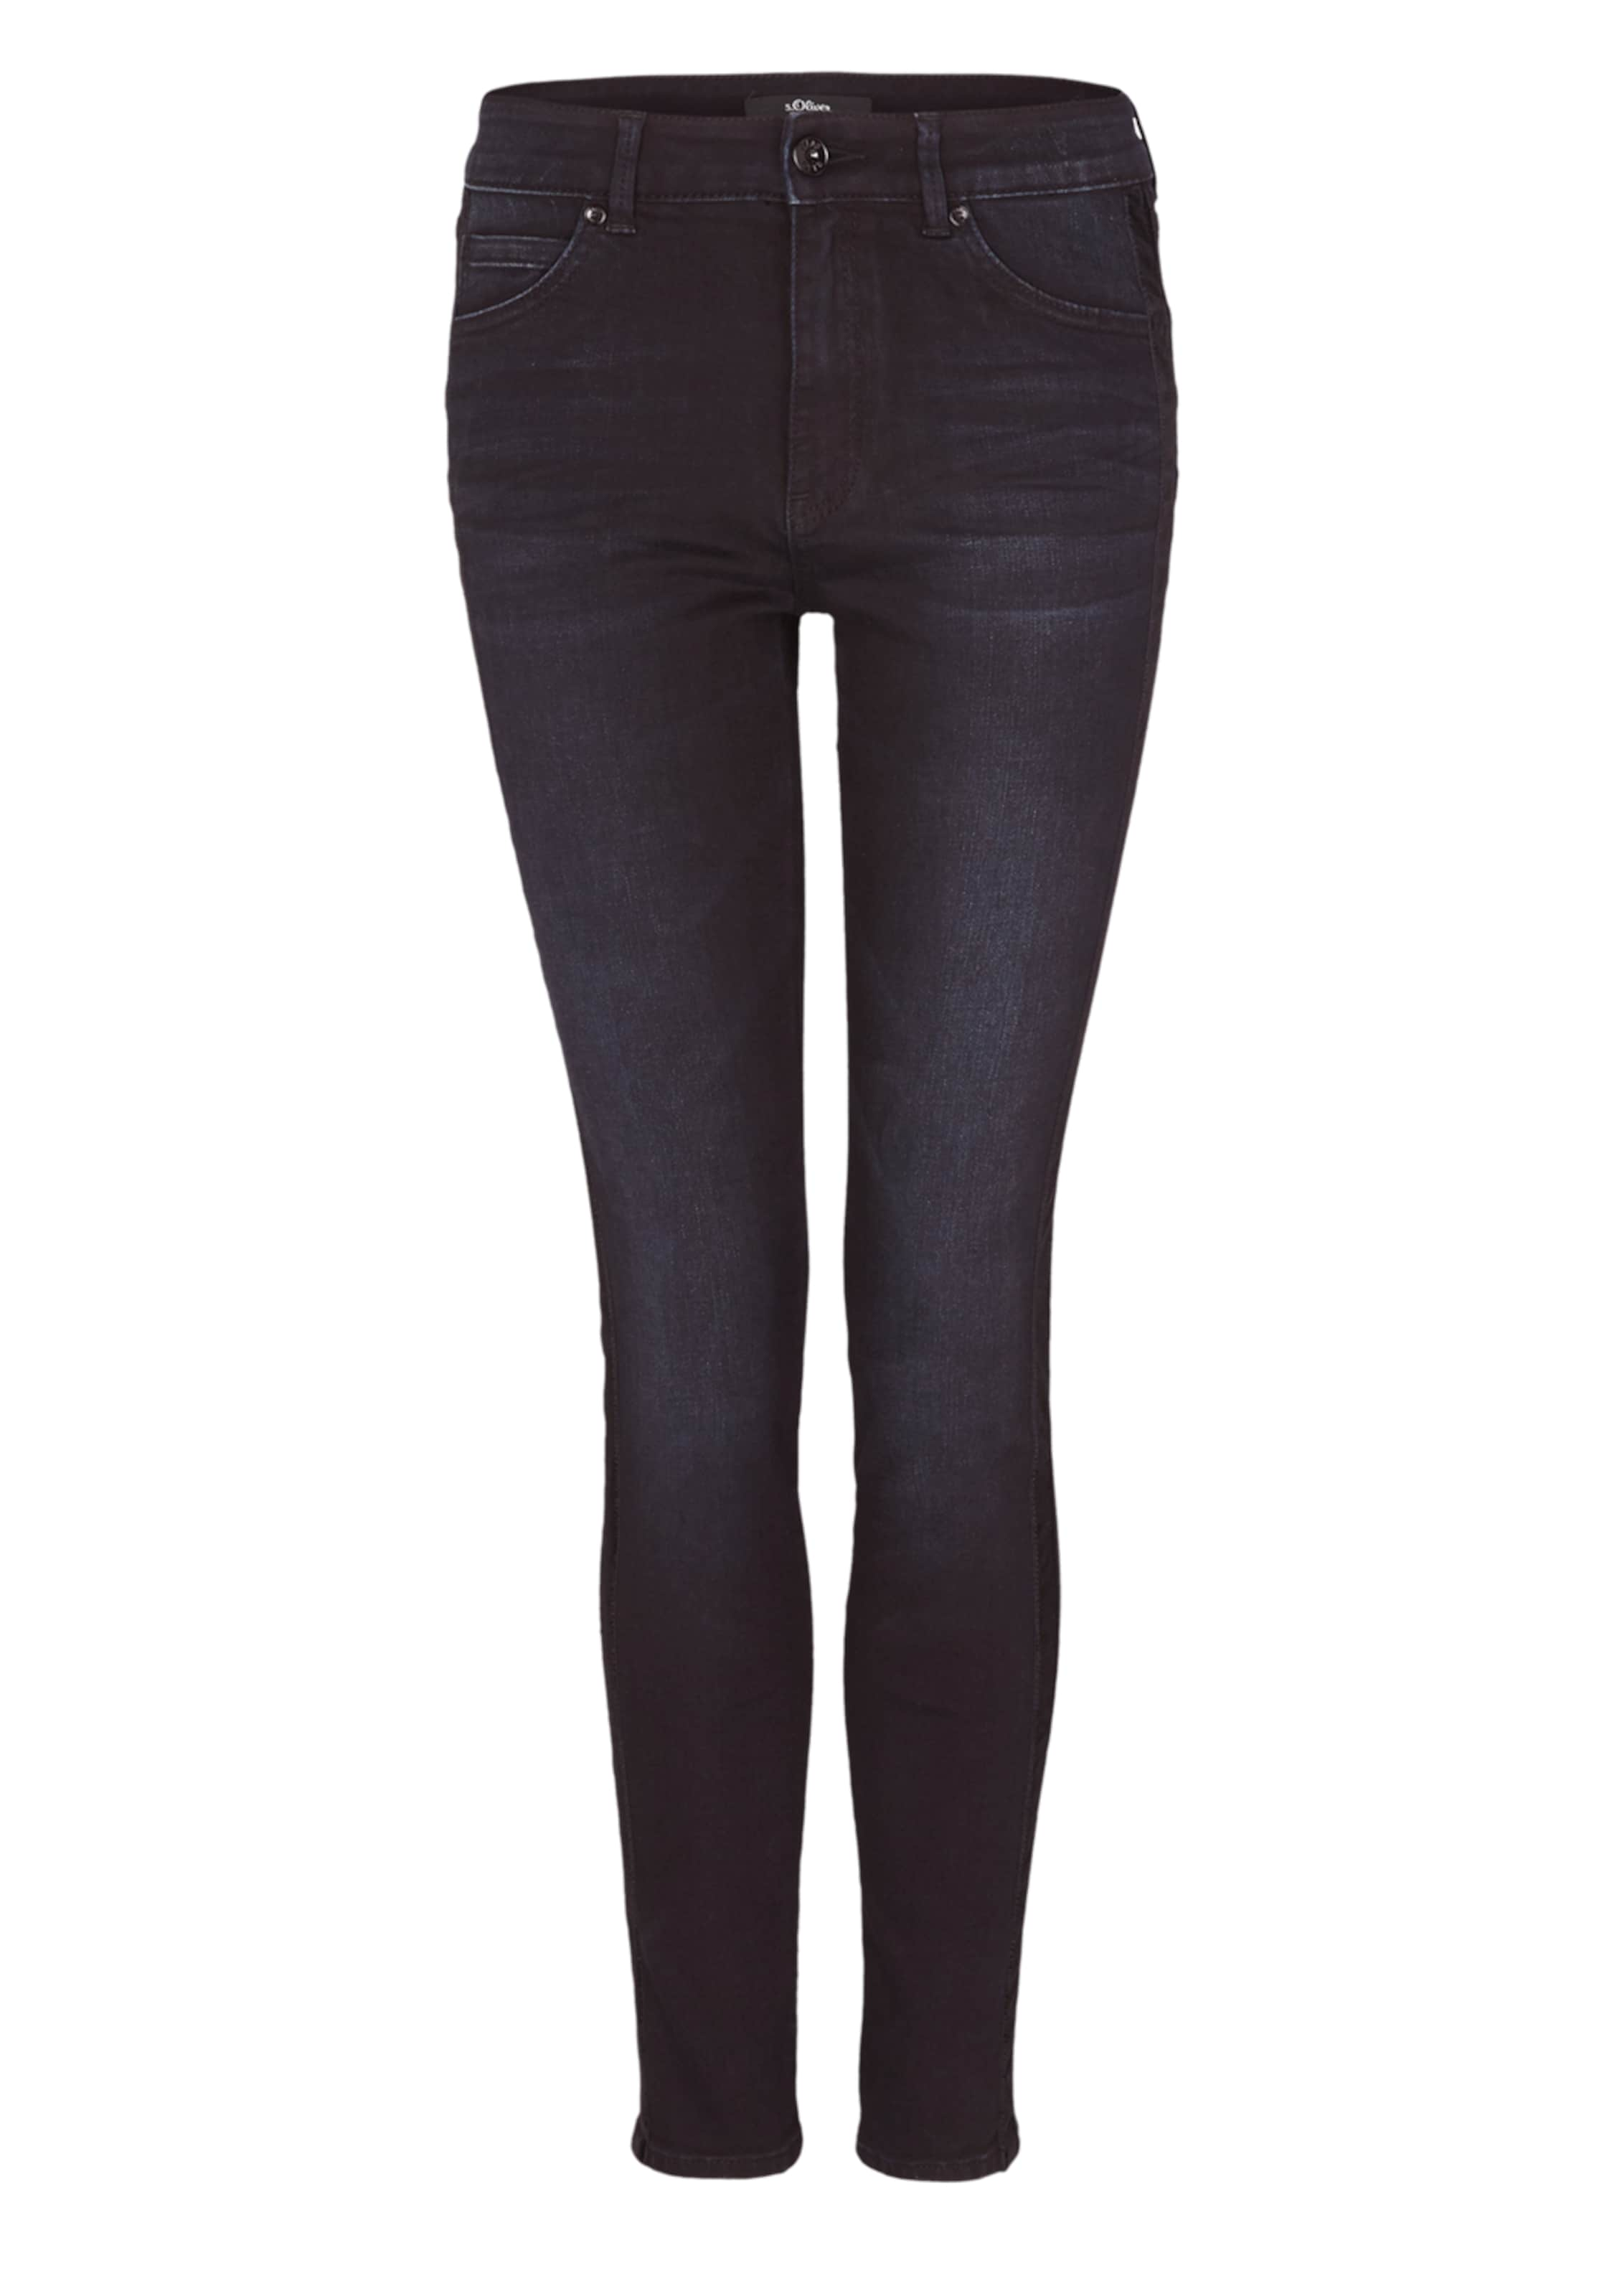 Black Jeans oliver S Label In Dunkelblau rCthQxsd